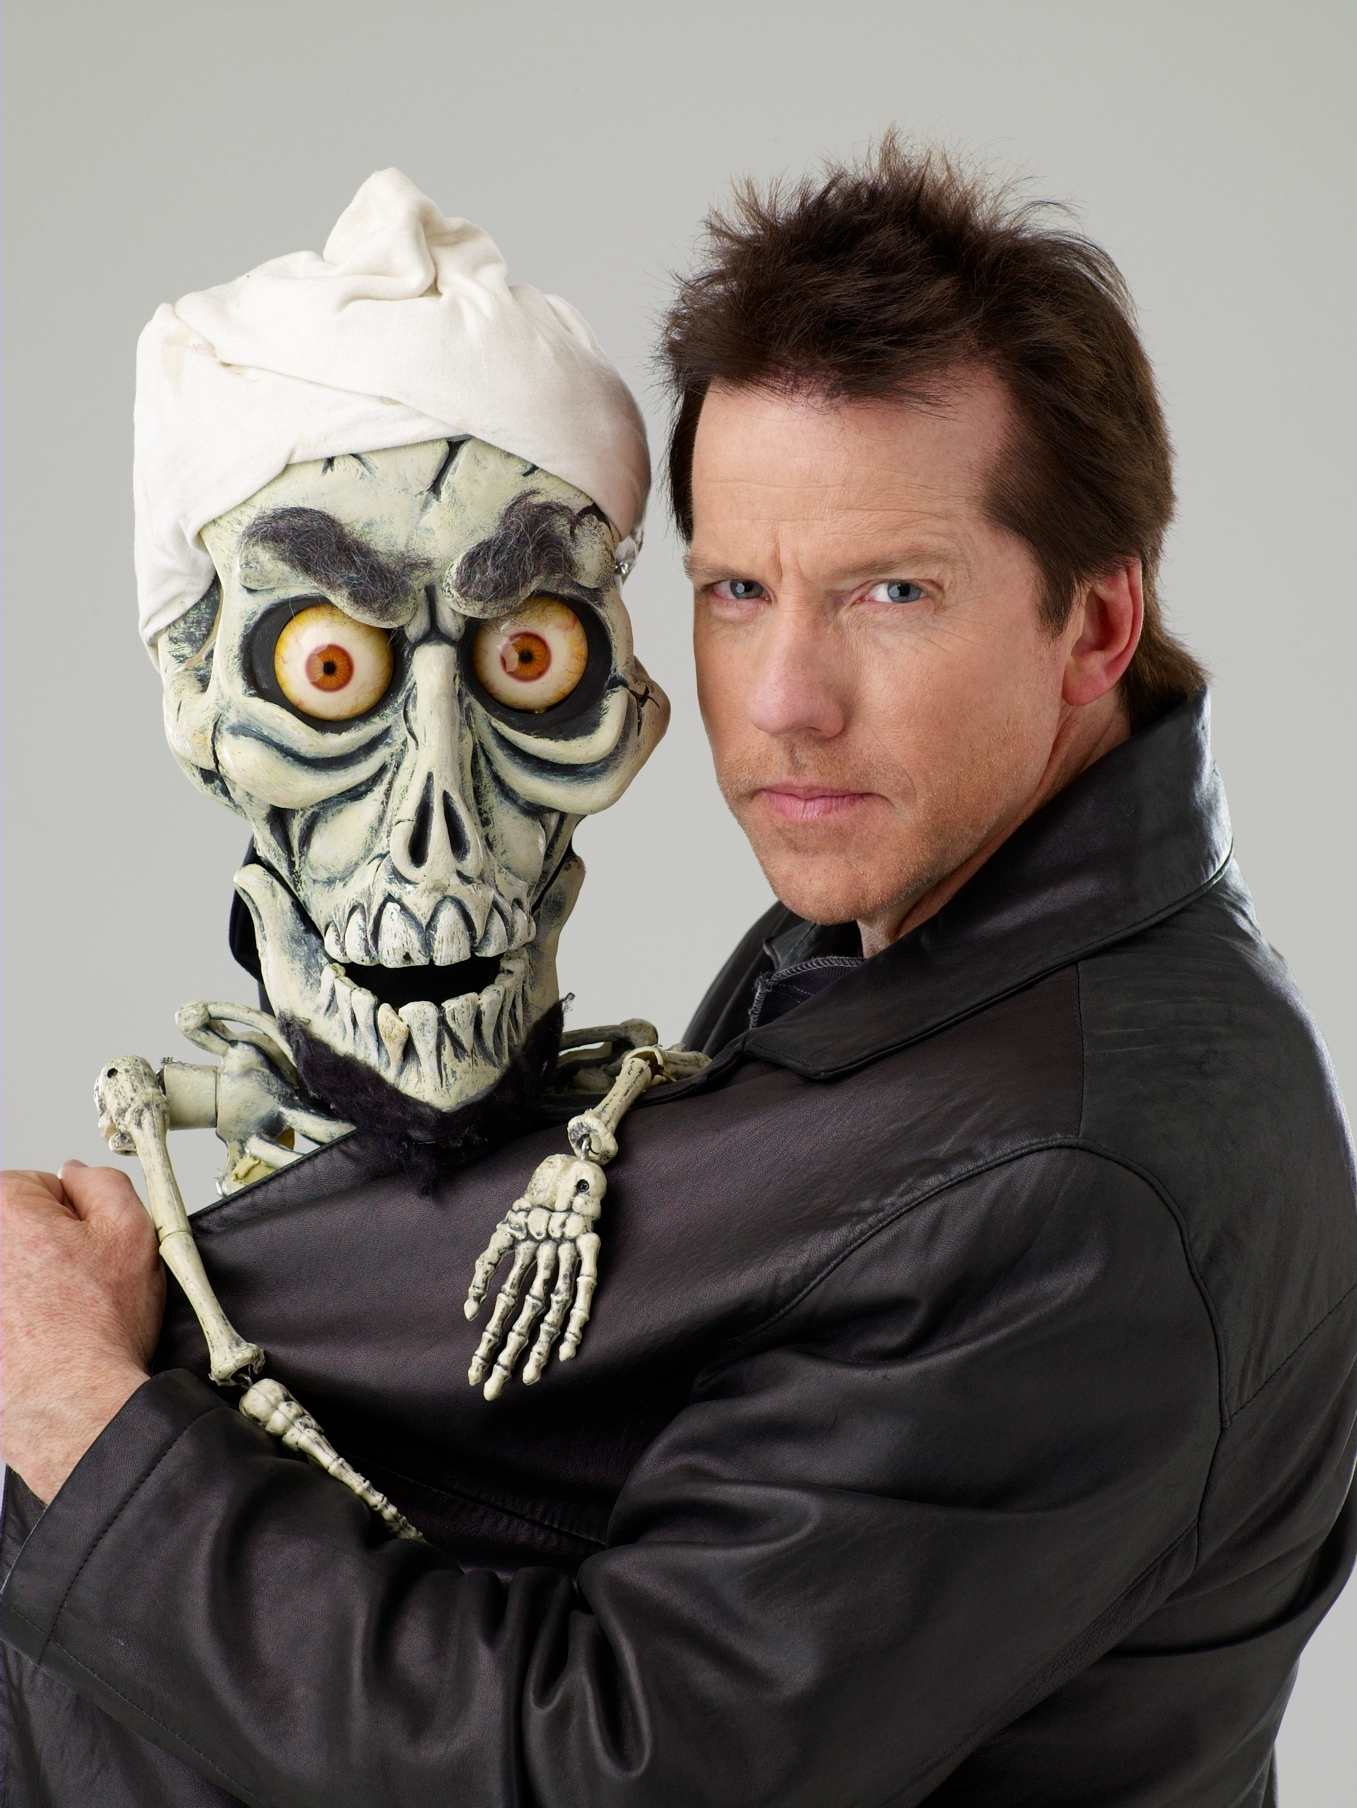 http://upload.wikimedia.org/wikipedia/commons/b/bb/Jeff_Dunham_and_Achmed.JPG